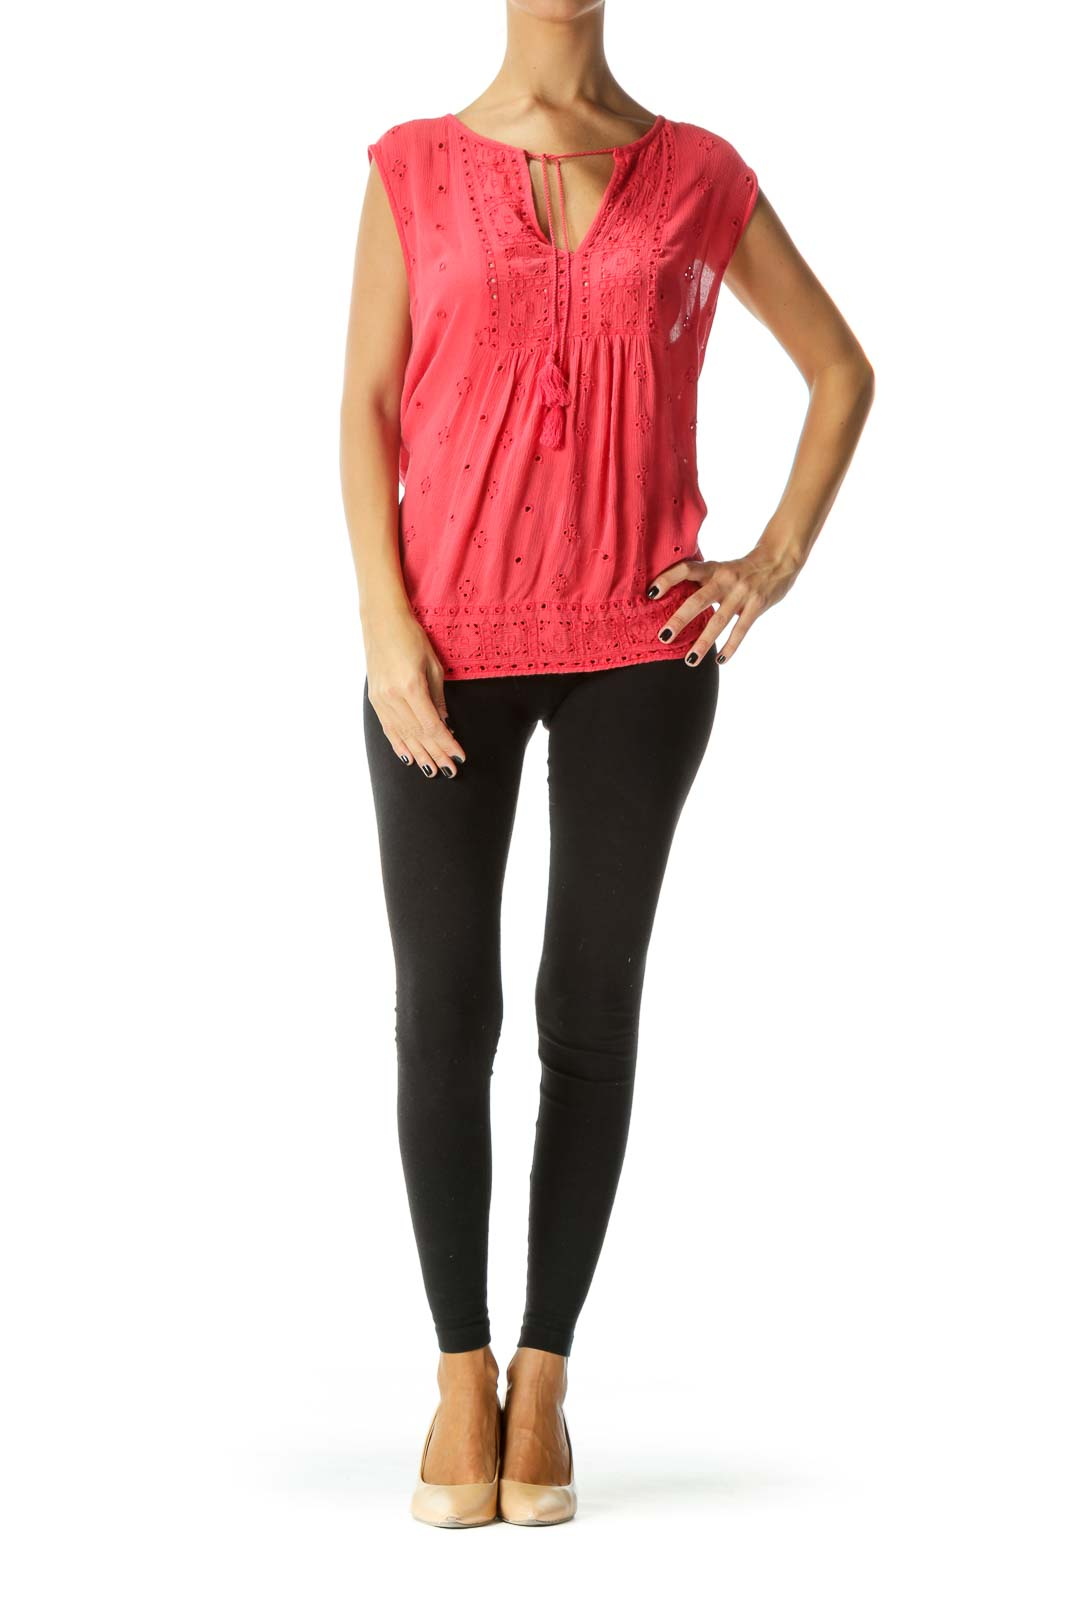 Coral Pink V-Neck Eyelet Knit Flared Tank Top